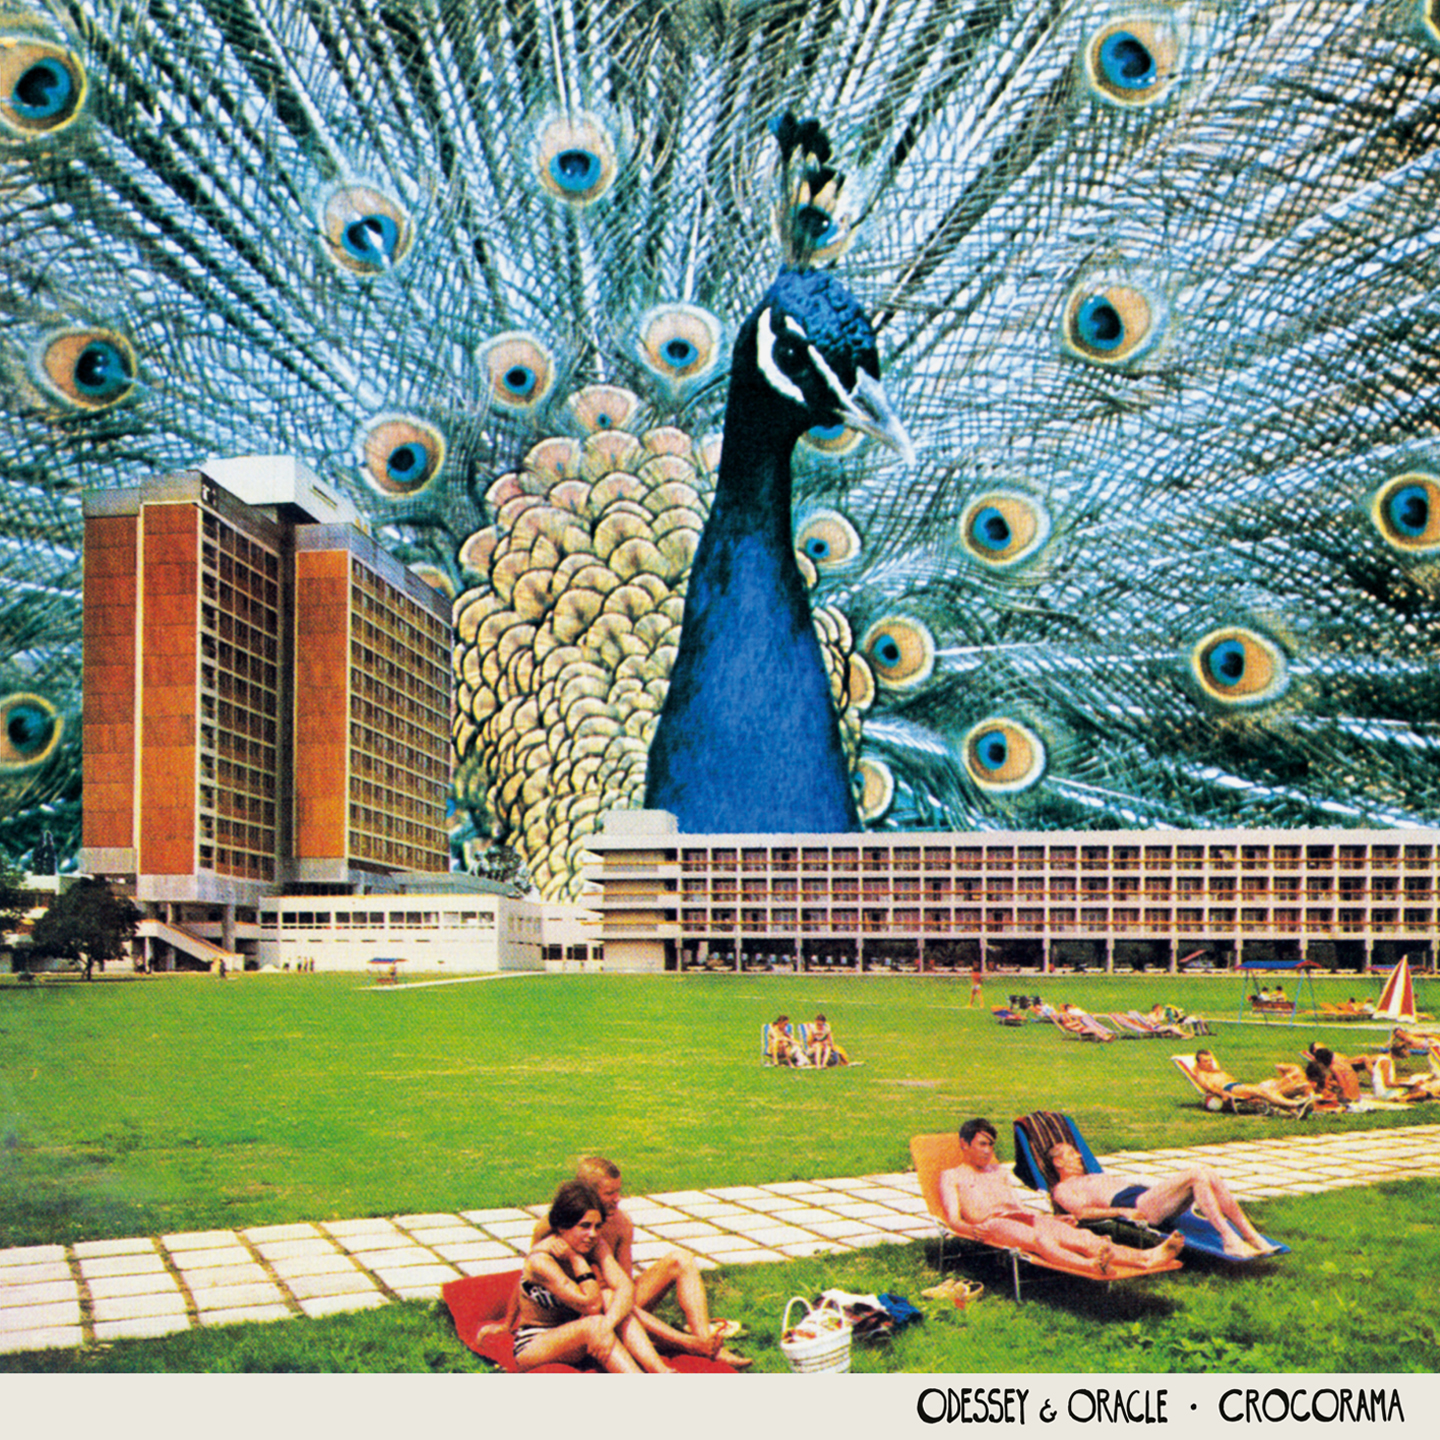 Odessey and Oracle Crocorama